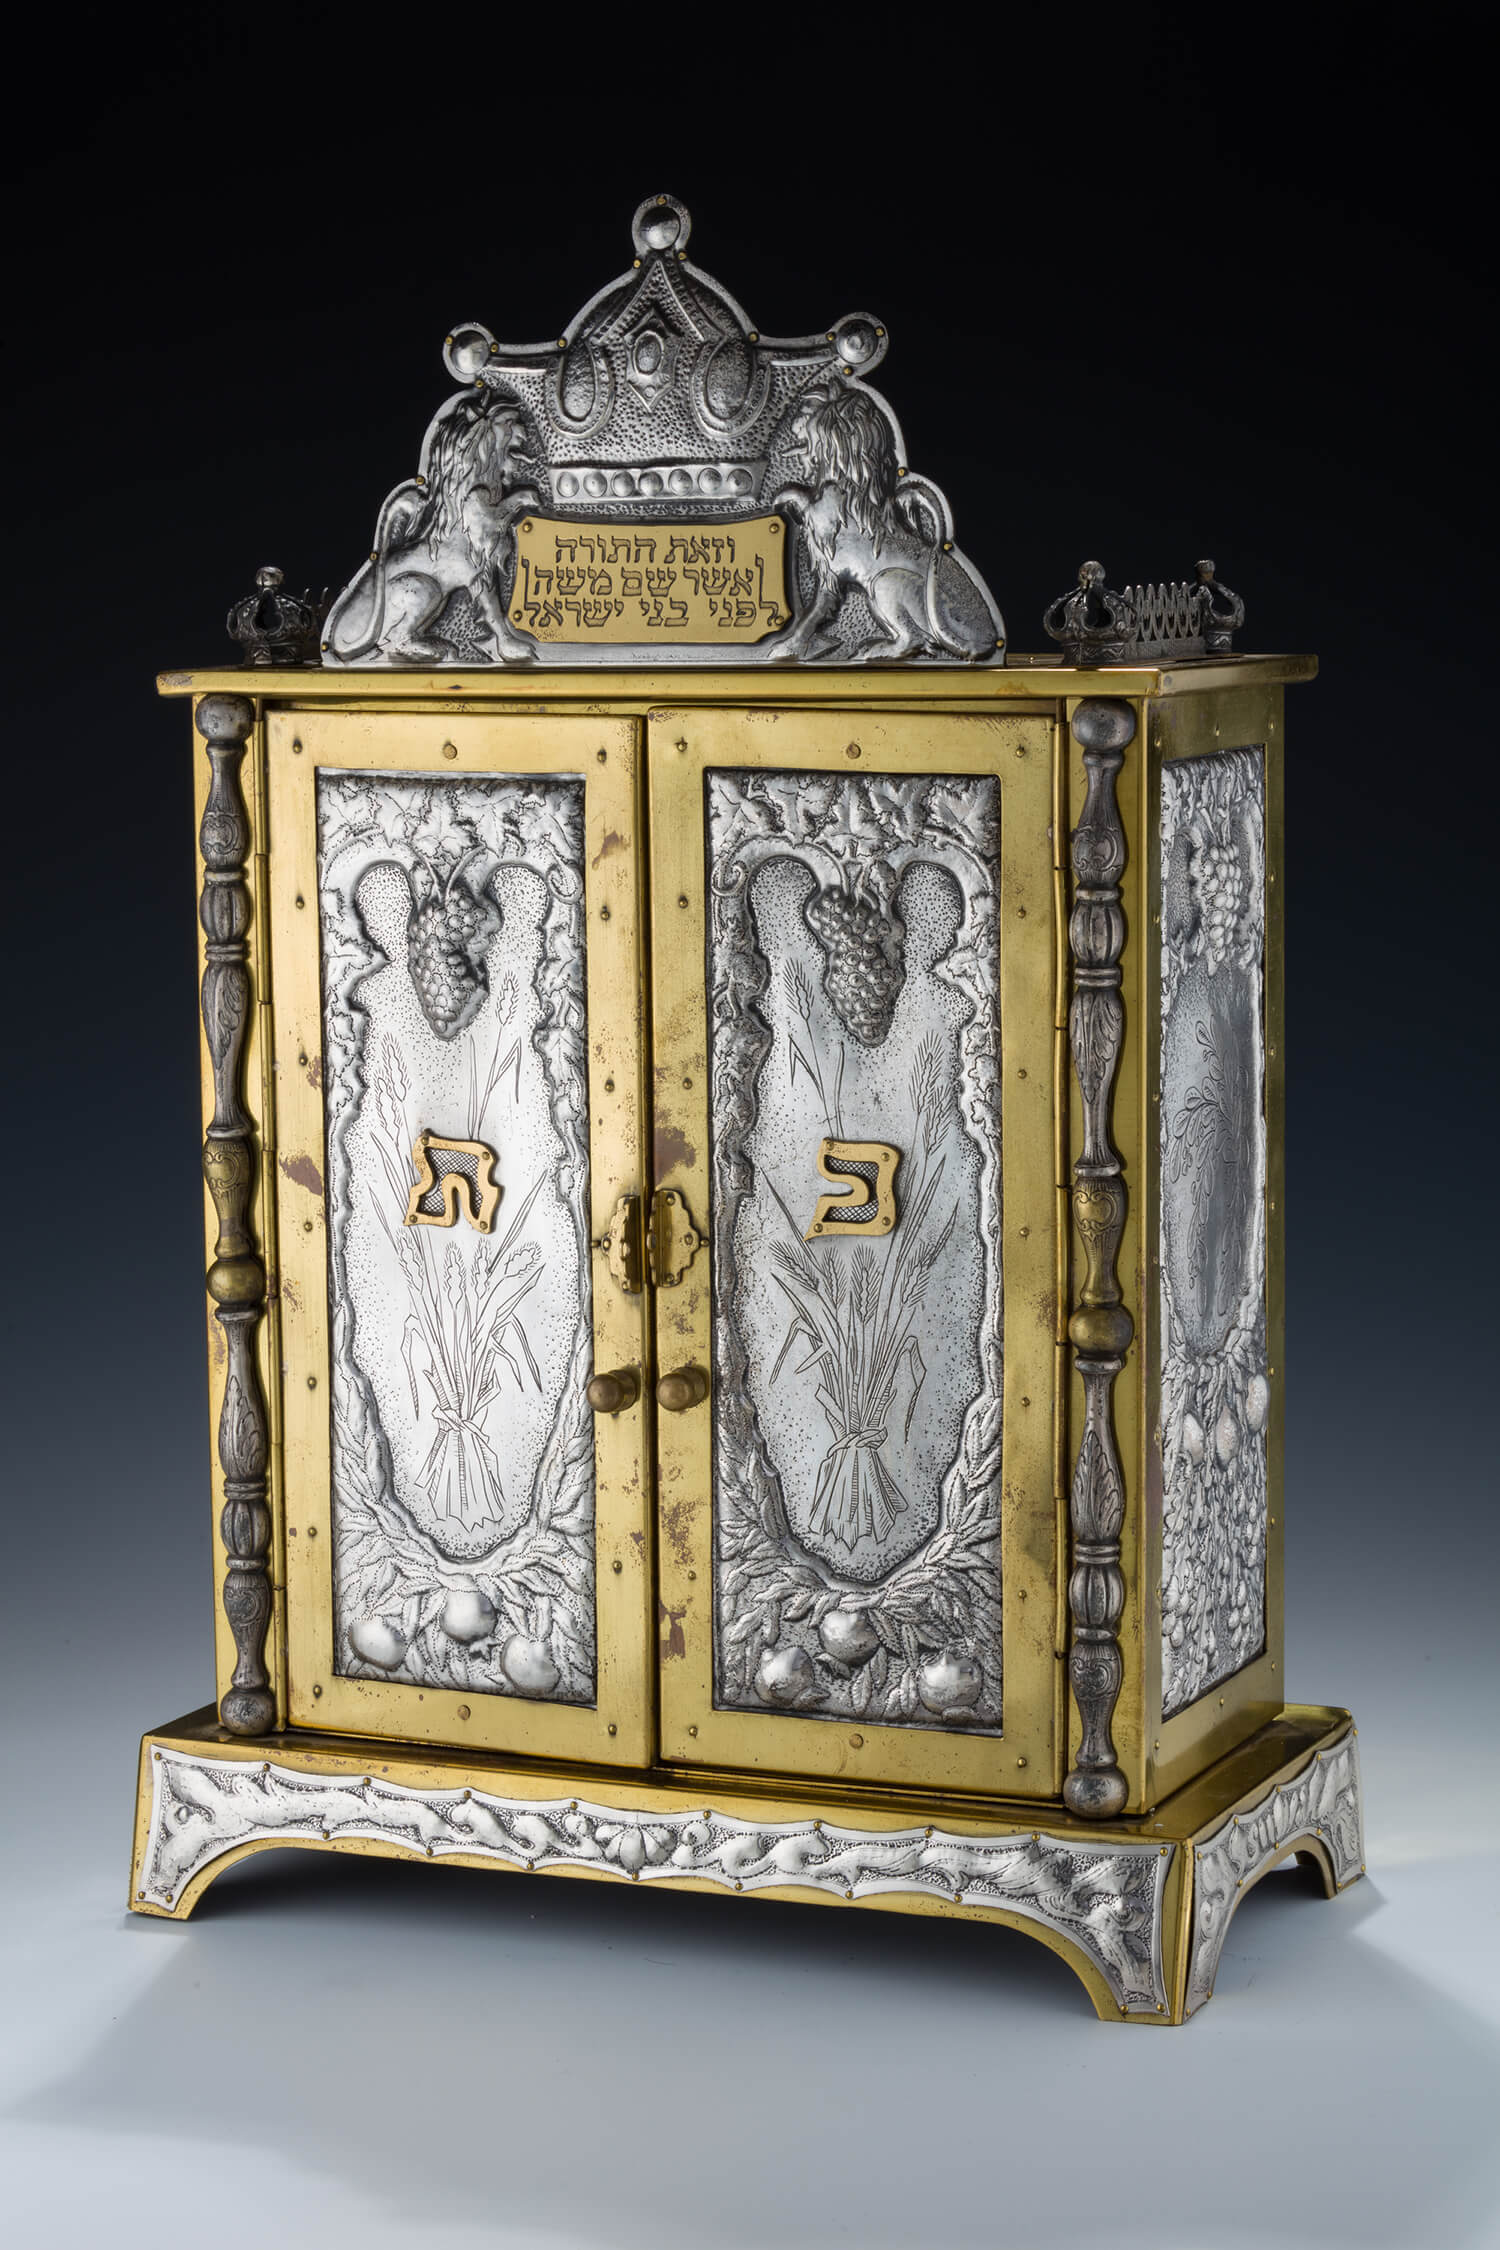 101. A STERLING SILVER AND BRASS ARON KODESH